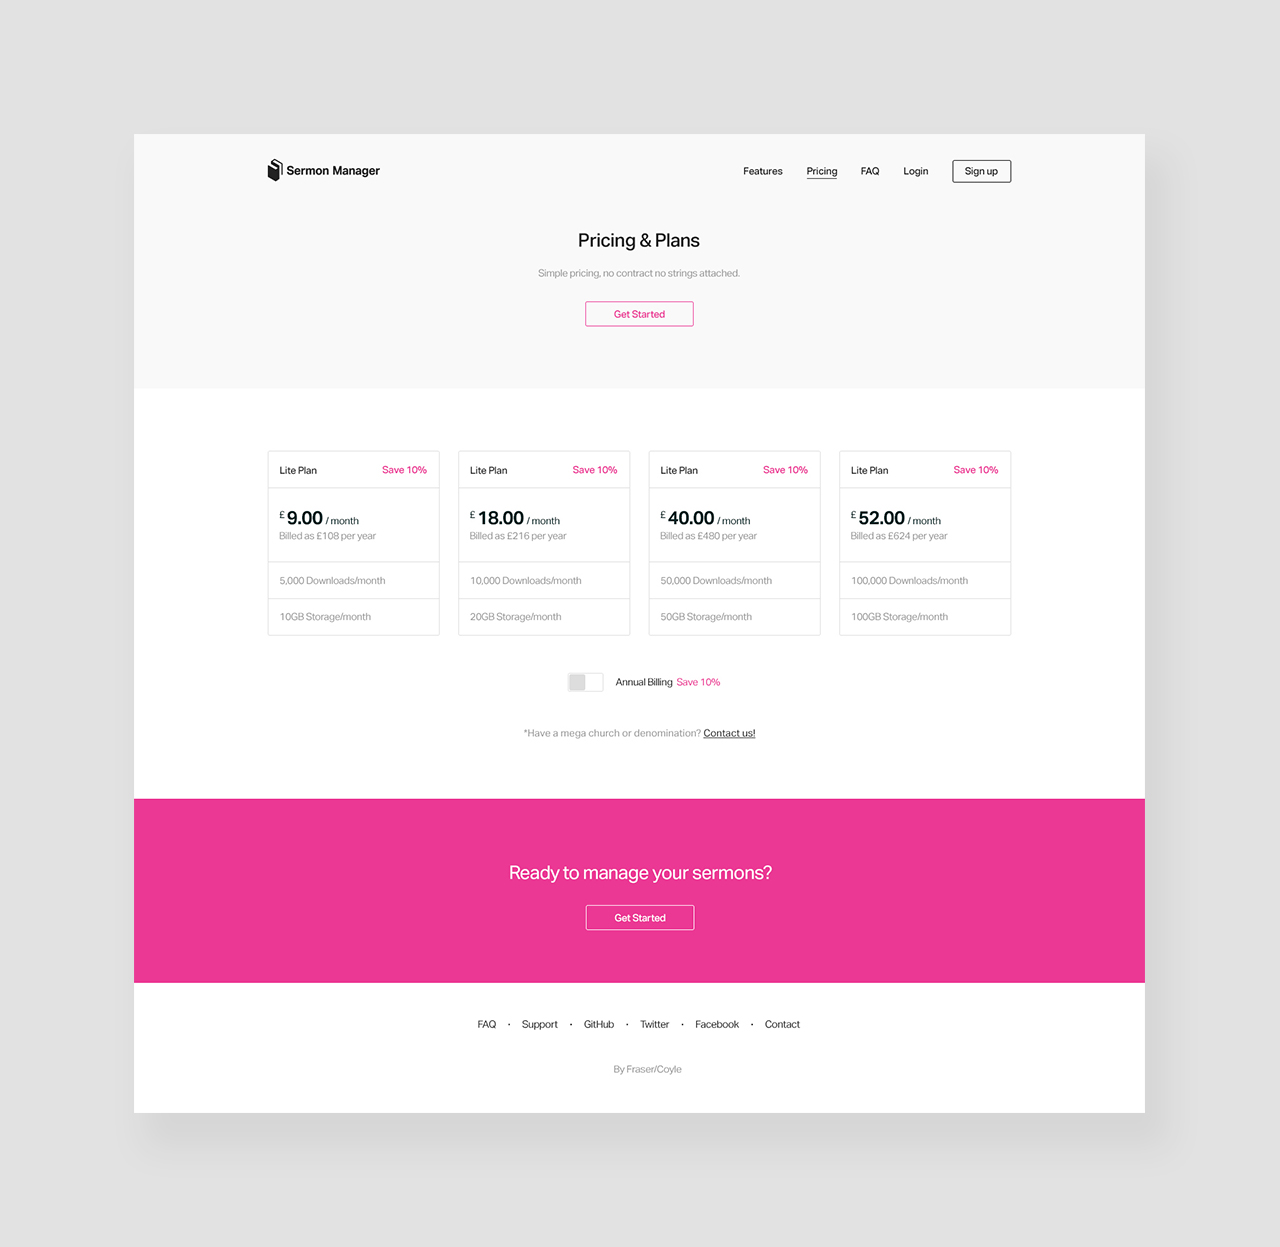 sermonmanager-mockup-website-pricing